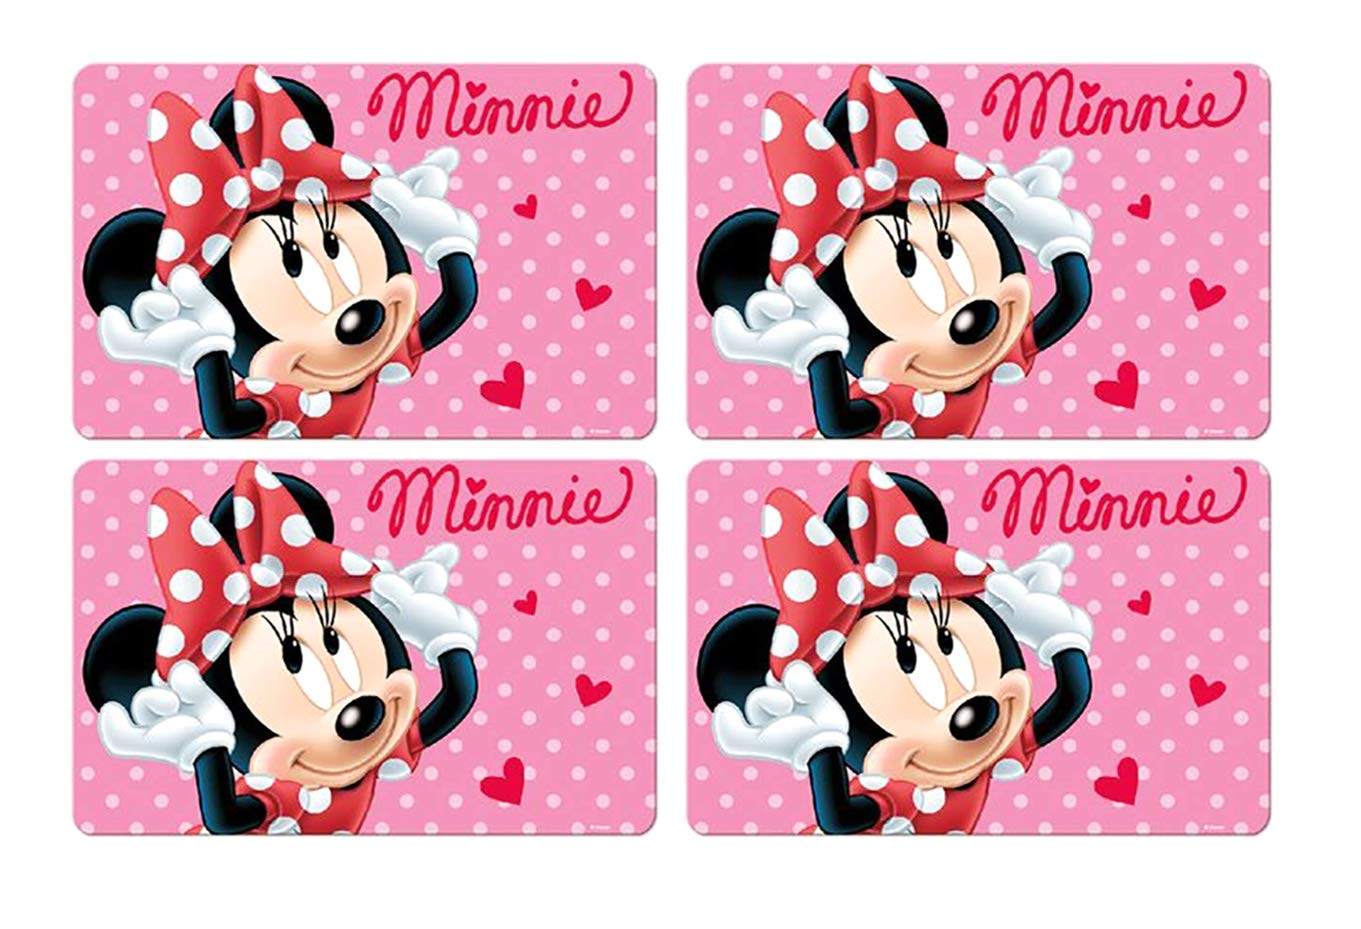 Malun Mat Kneading Under Layer /4x Place Mat//Table Mat//Place Mat//Table Mats//Placemats//Essunterlage//Tablemat//Placemat /Children Gift Idea 3D/ Made from plastic washable Craft Mat 42/x 28/cm Minnie Mouse/